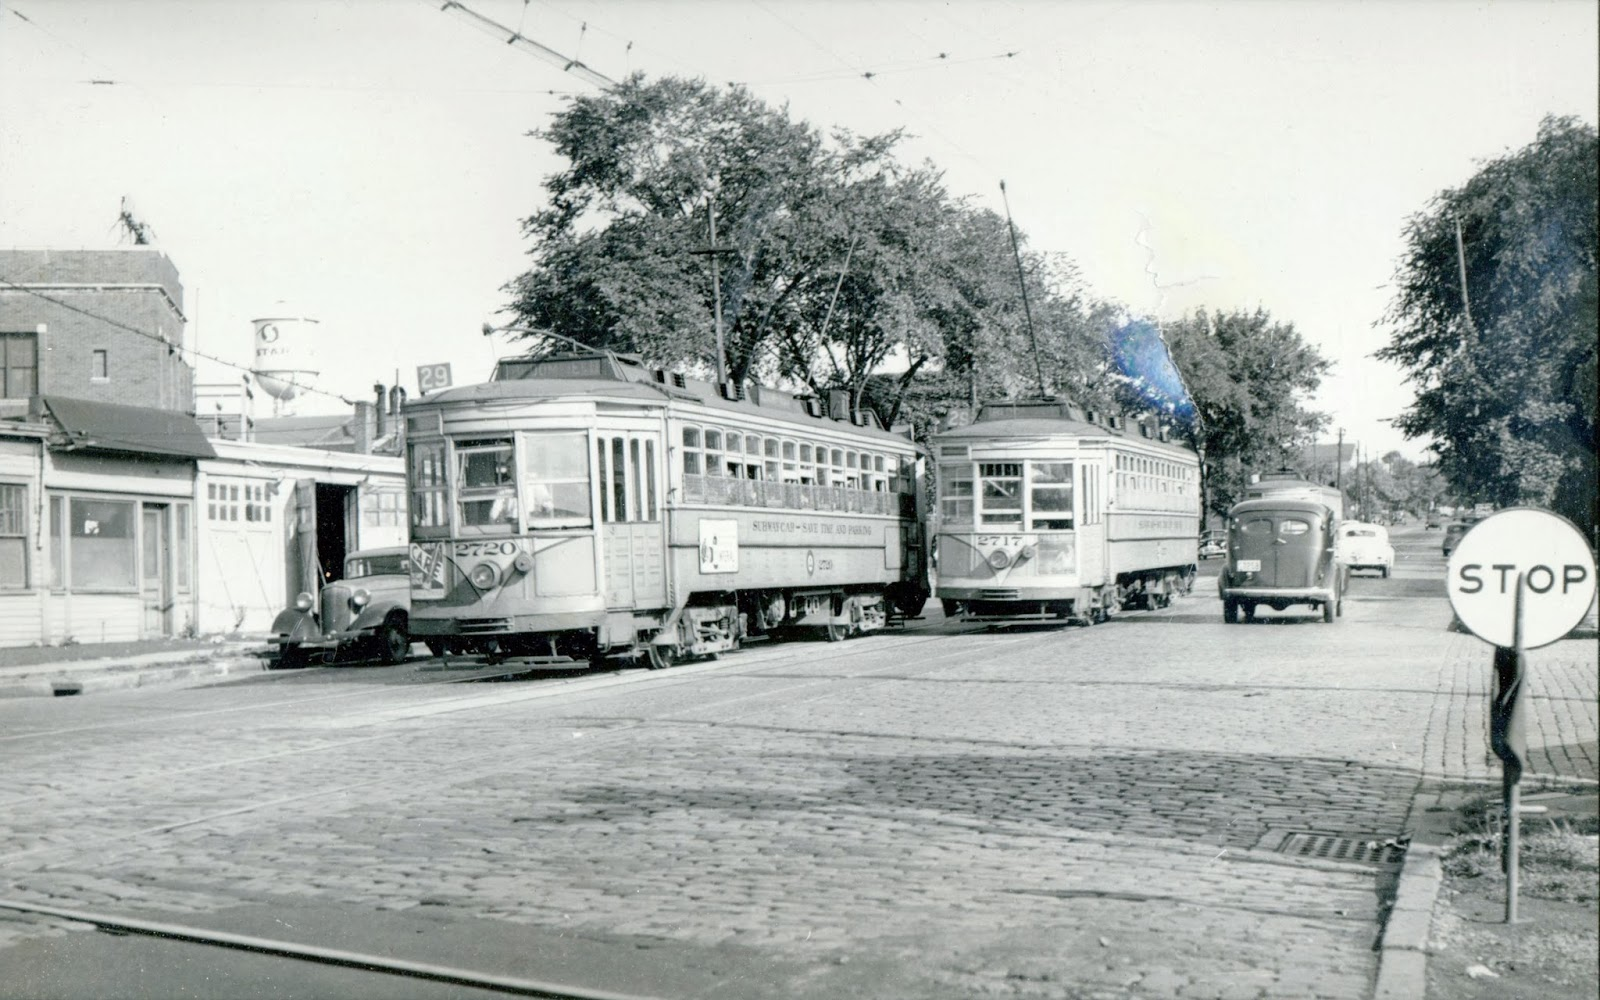 Lock 15 East: The 29 Public Service Trolley to Bloomfield